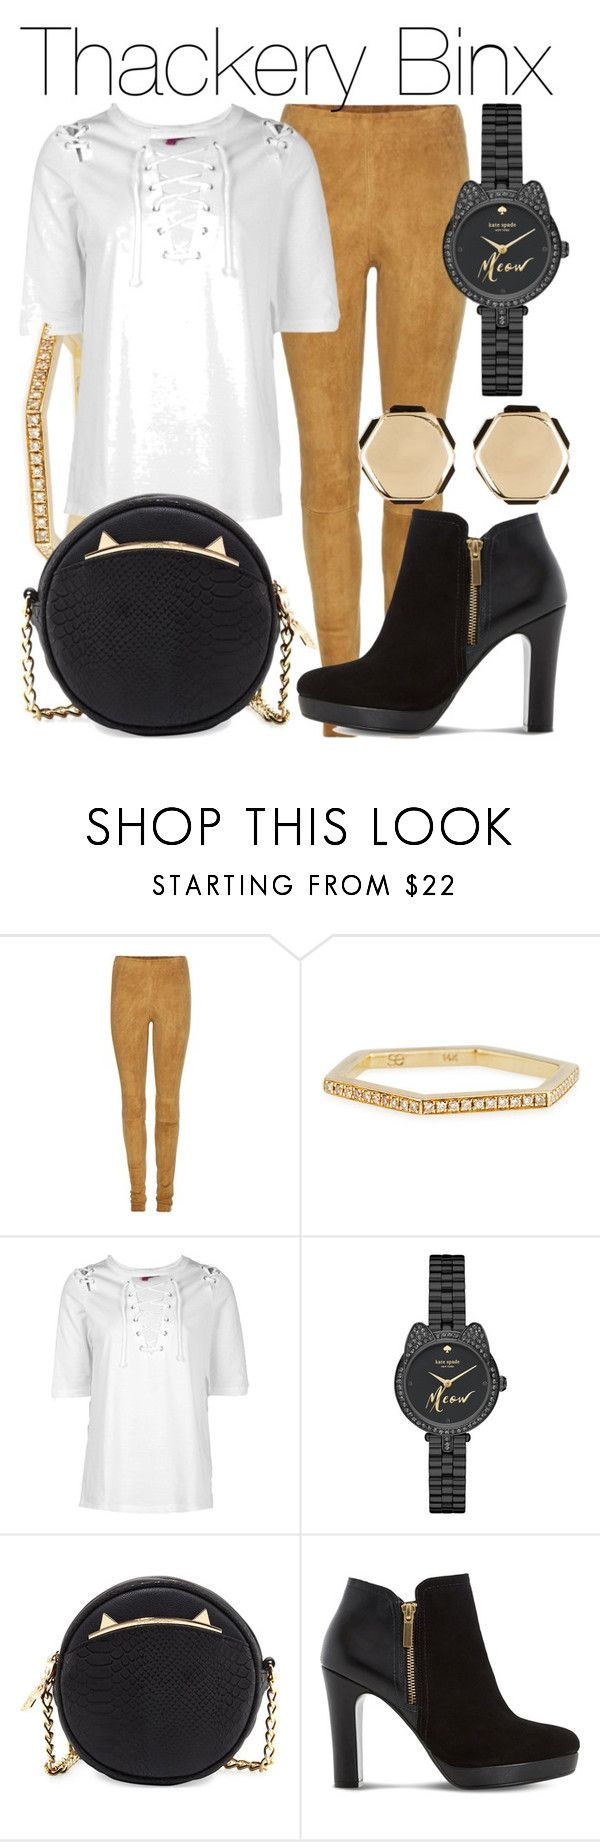 """Thackery Binx"" by fabulousgurl ❤ liked on Polyvore featuring STOULS, Sydney Evan, Boohoo, Kate Spade, Betsey Johnson, Dune, 14th & Union, disneybound and hocuspocus"